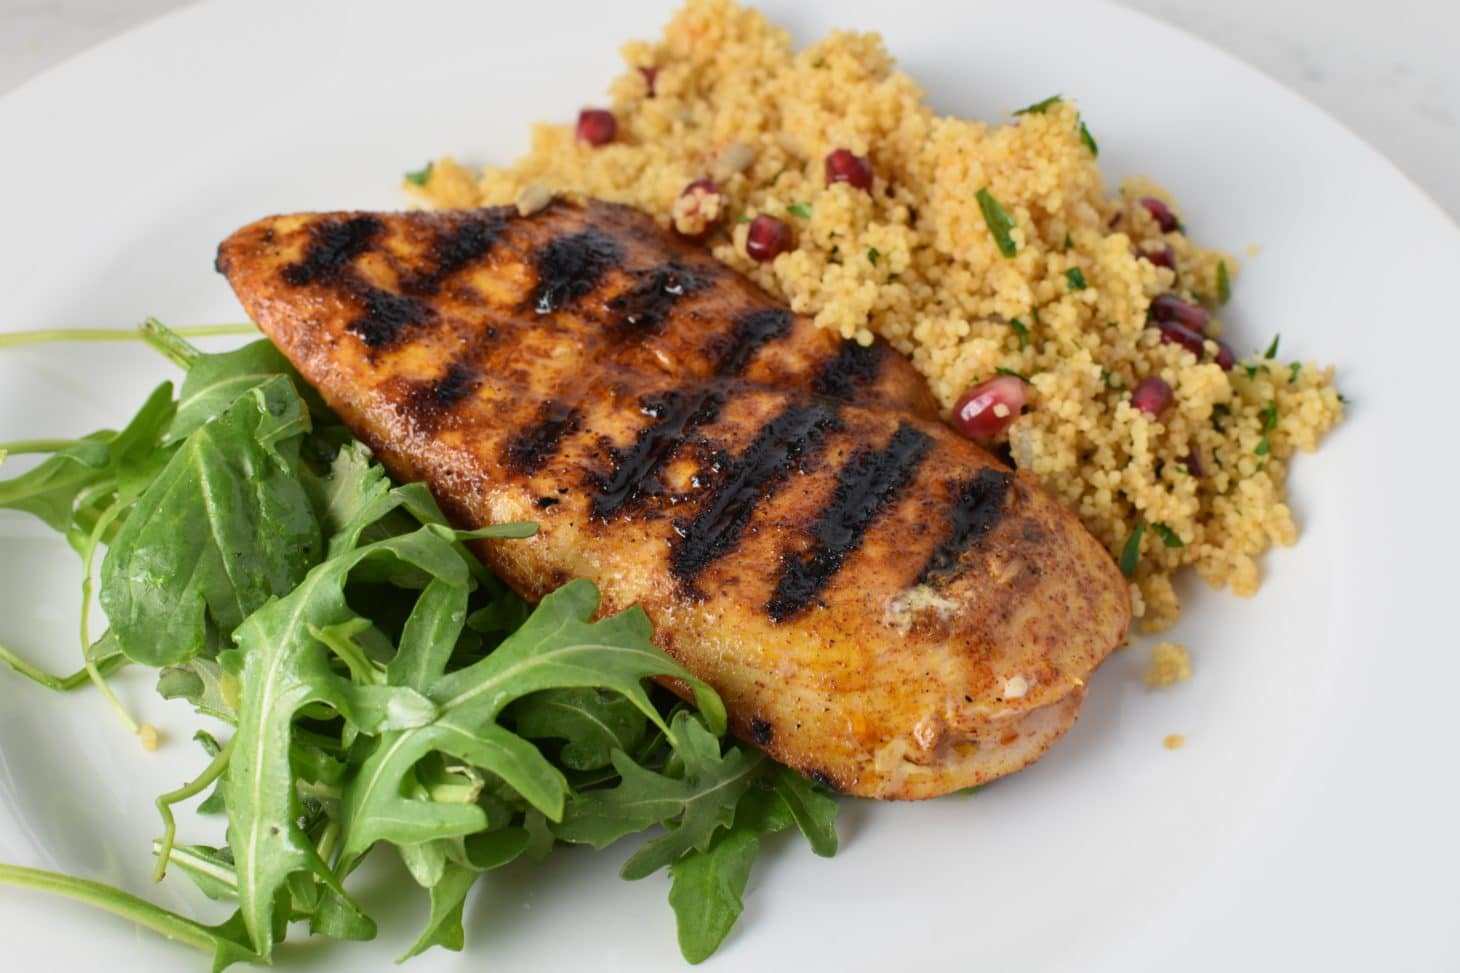 Moroccan Chicken with Pomegranate Cous Cous #hyh #migrainediet #grilledchicken